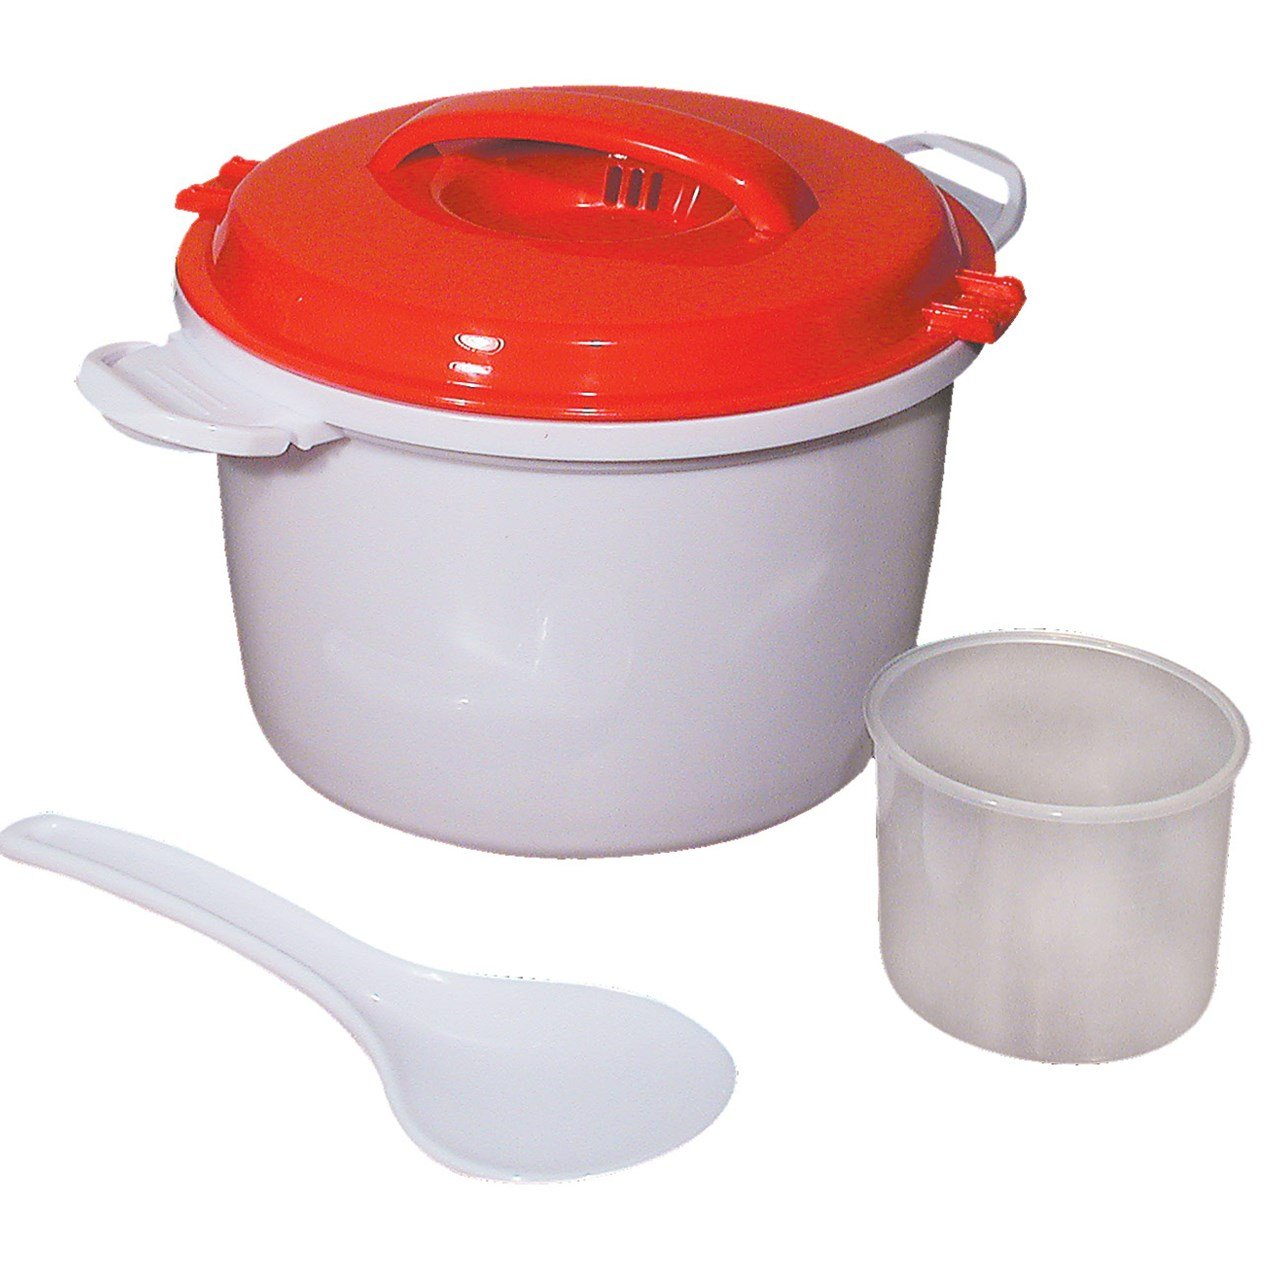 Microwave Rice Cooker Kitchen Dining